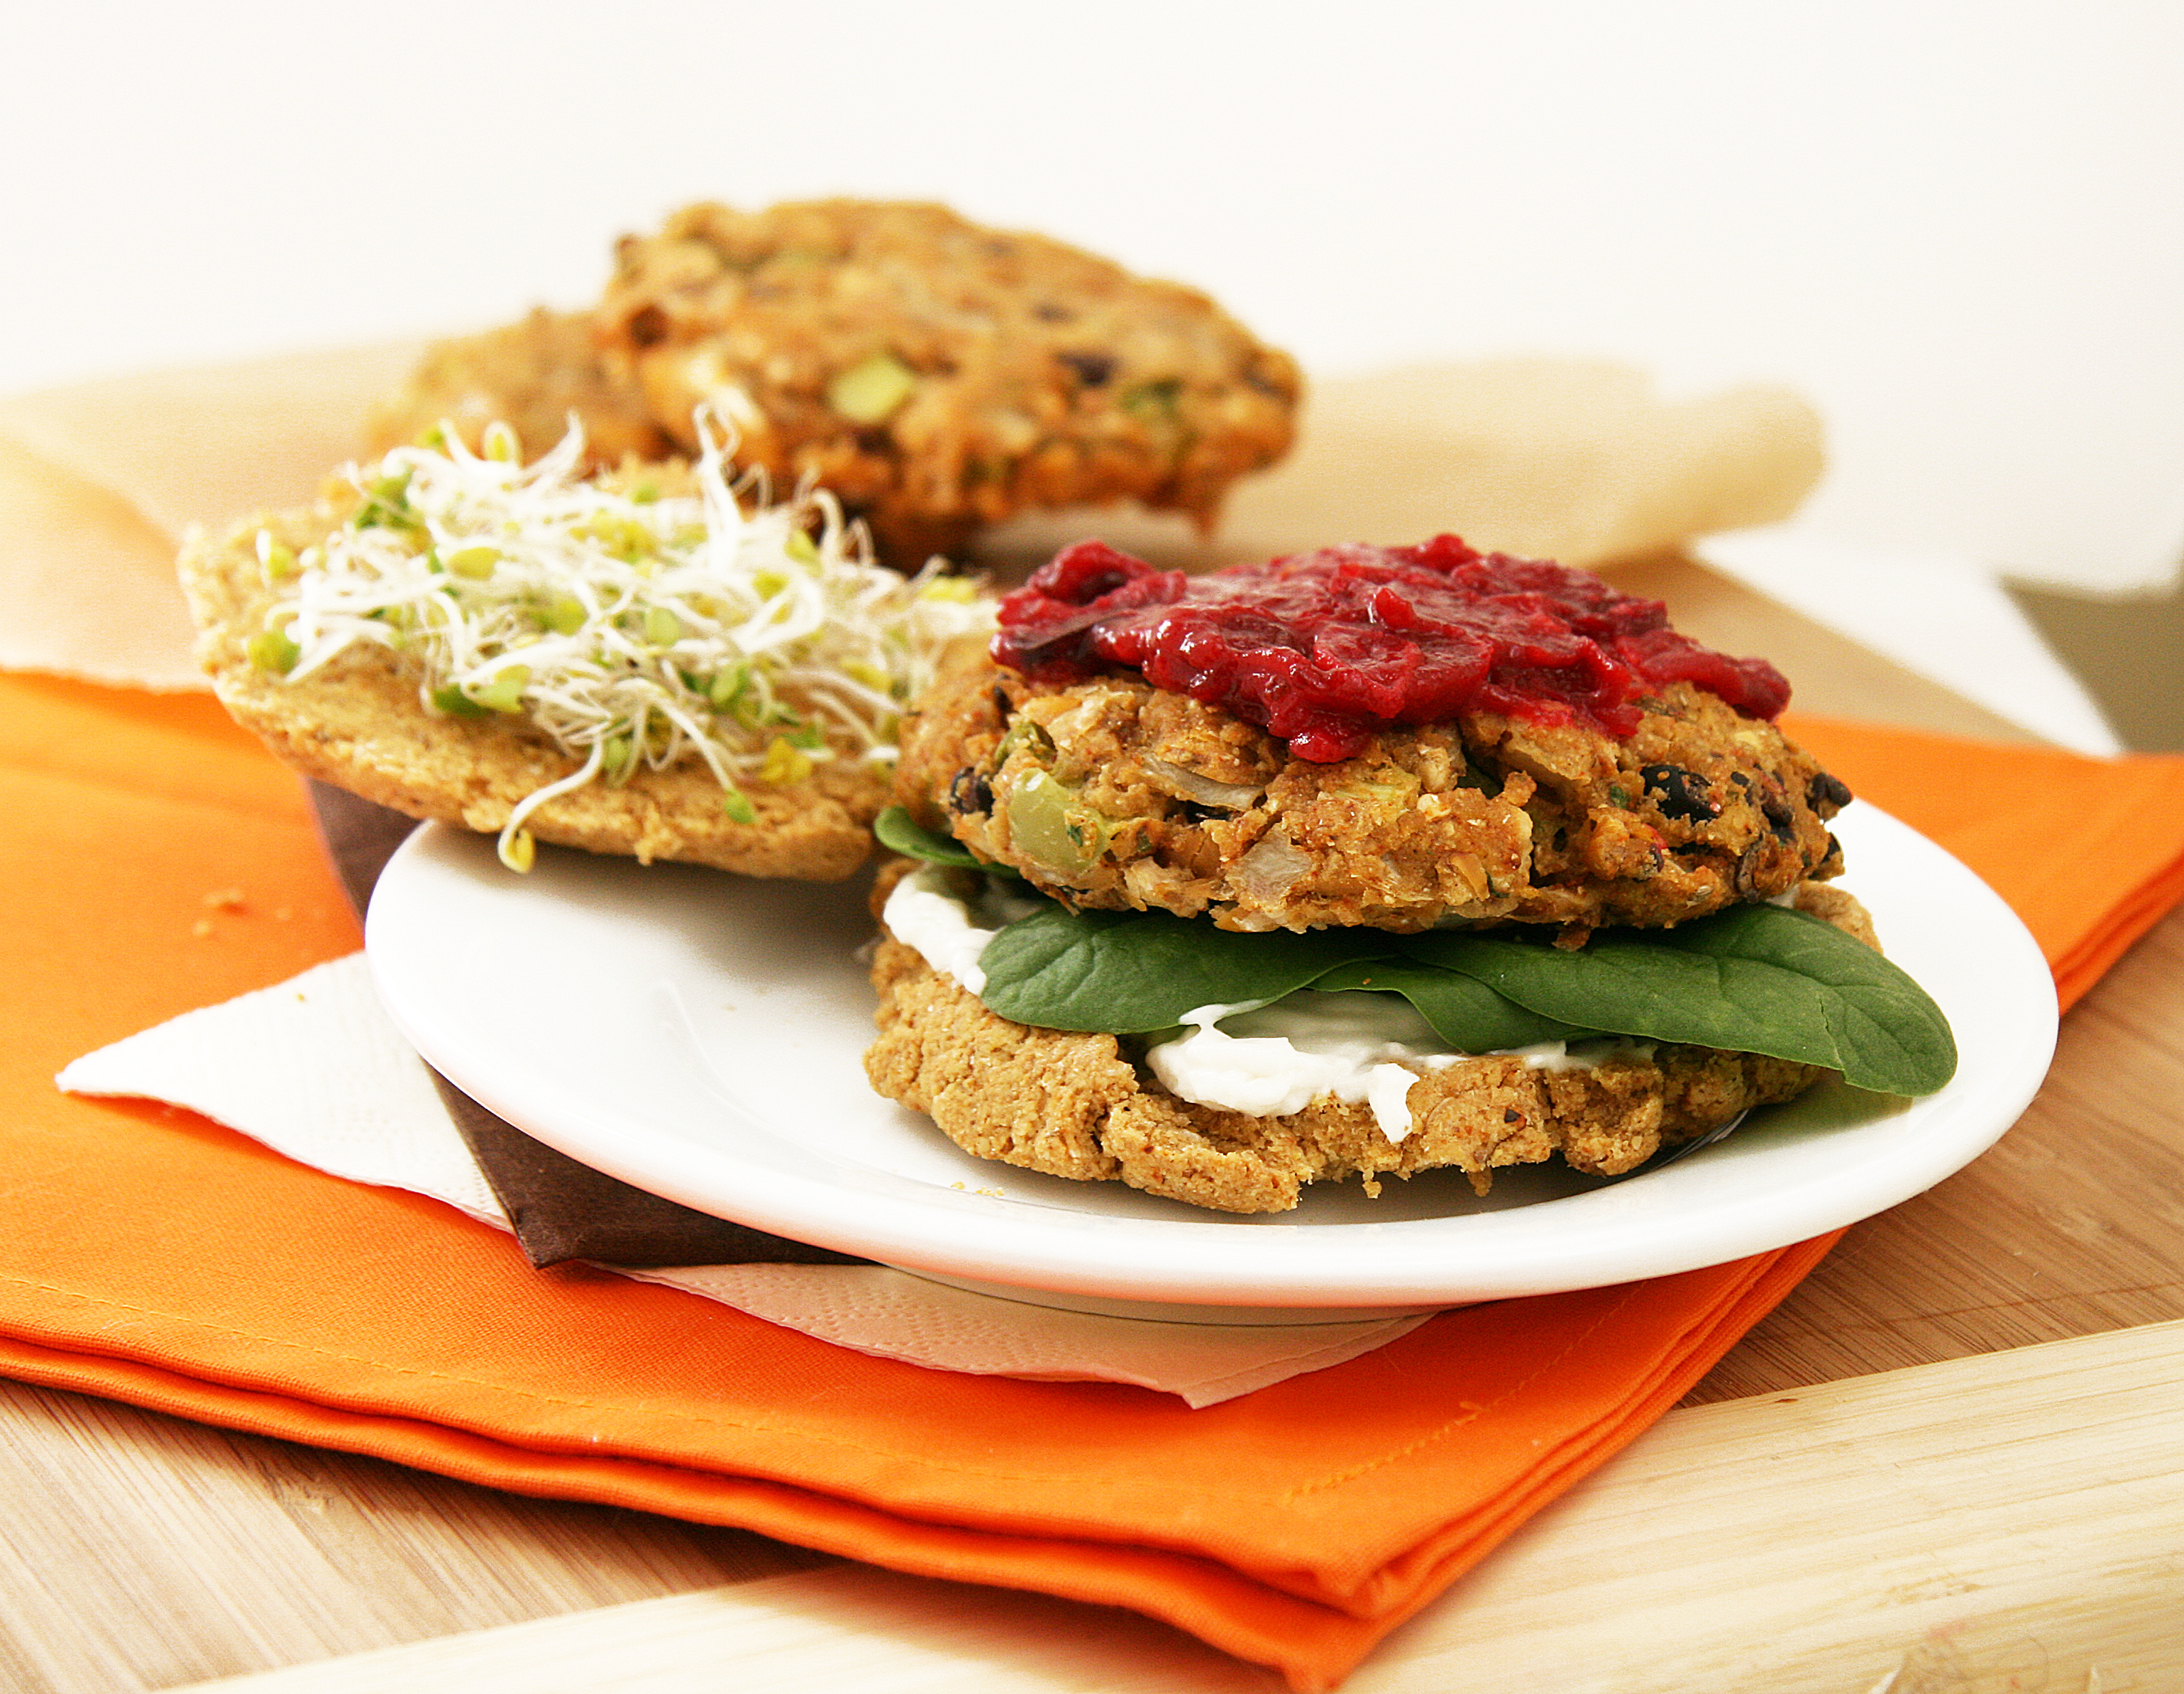 Kitchen Sink Veggie Burgers + Grain-Free Flax Bun | Natural Noshing